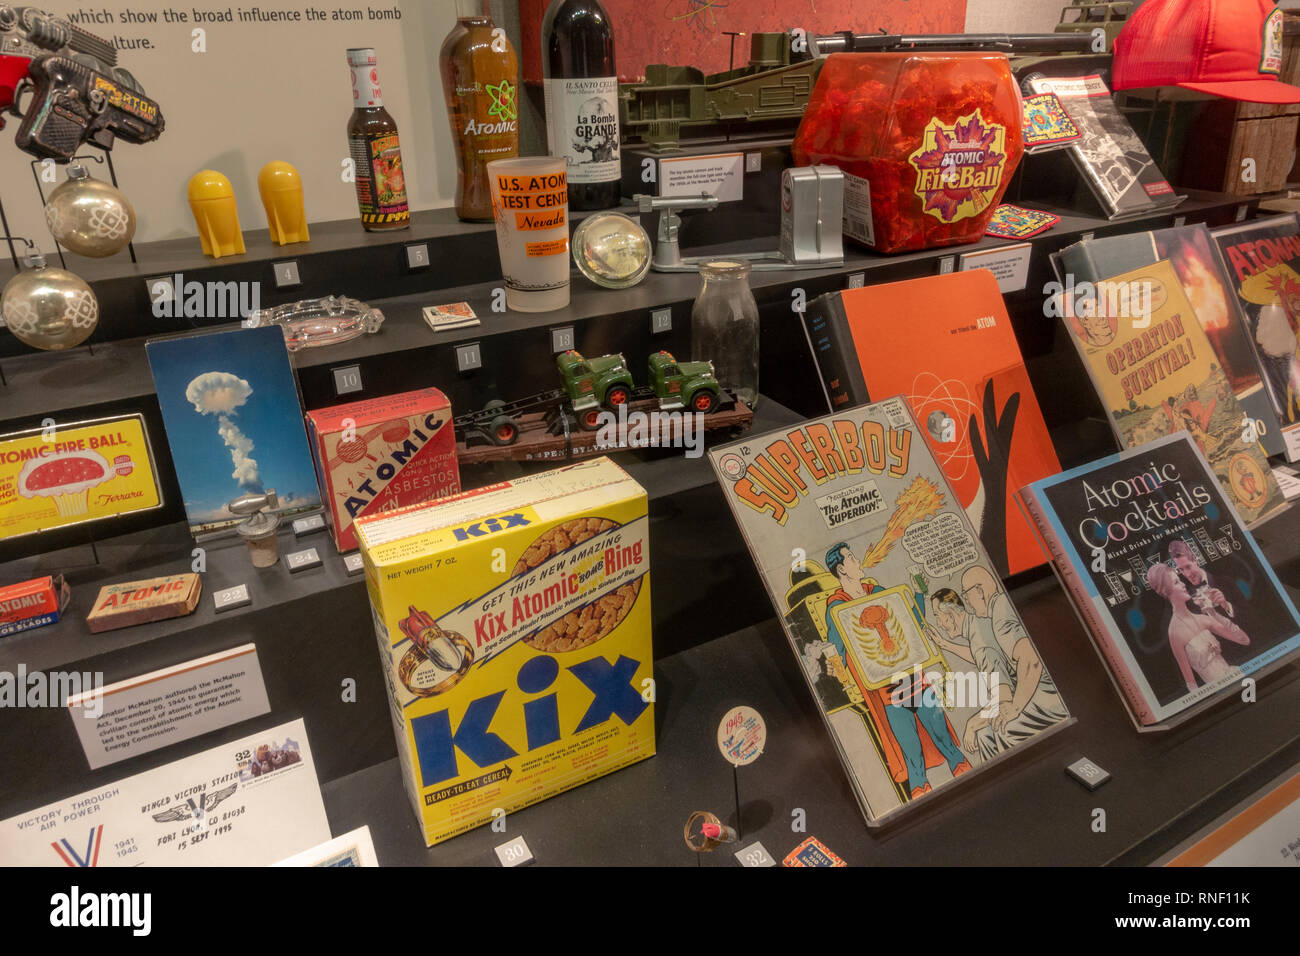 Atomic Bomb in Popular Culture display, Nevada, United States. - Stock Image